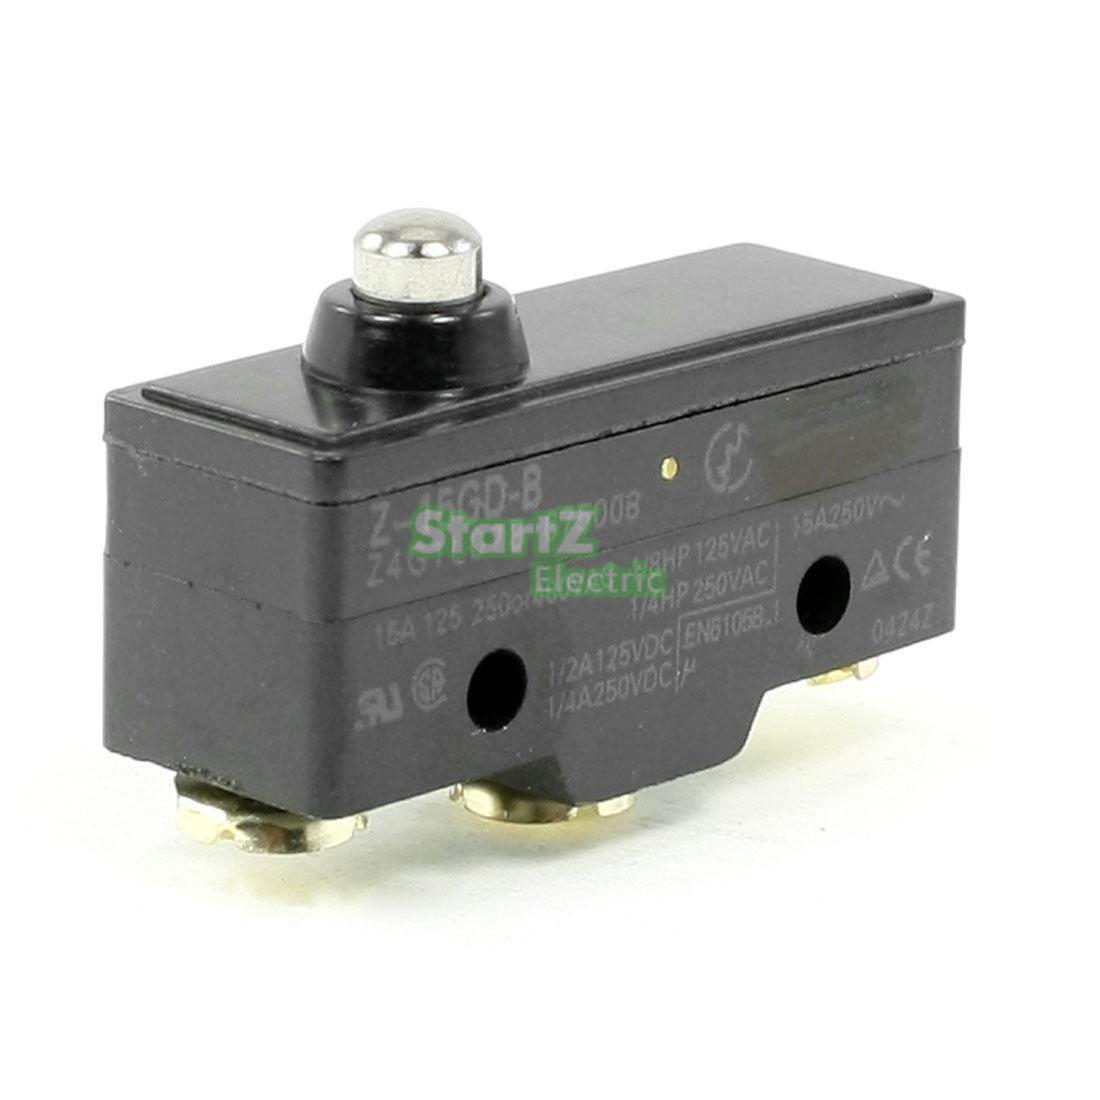 Short Push Plunger Normally Open/Close Basic Limit Switch Z-15GD-B